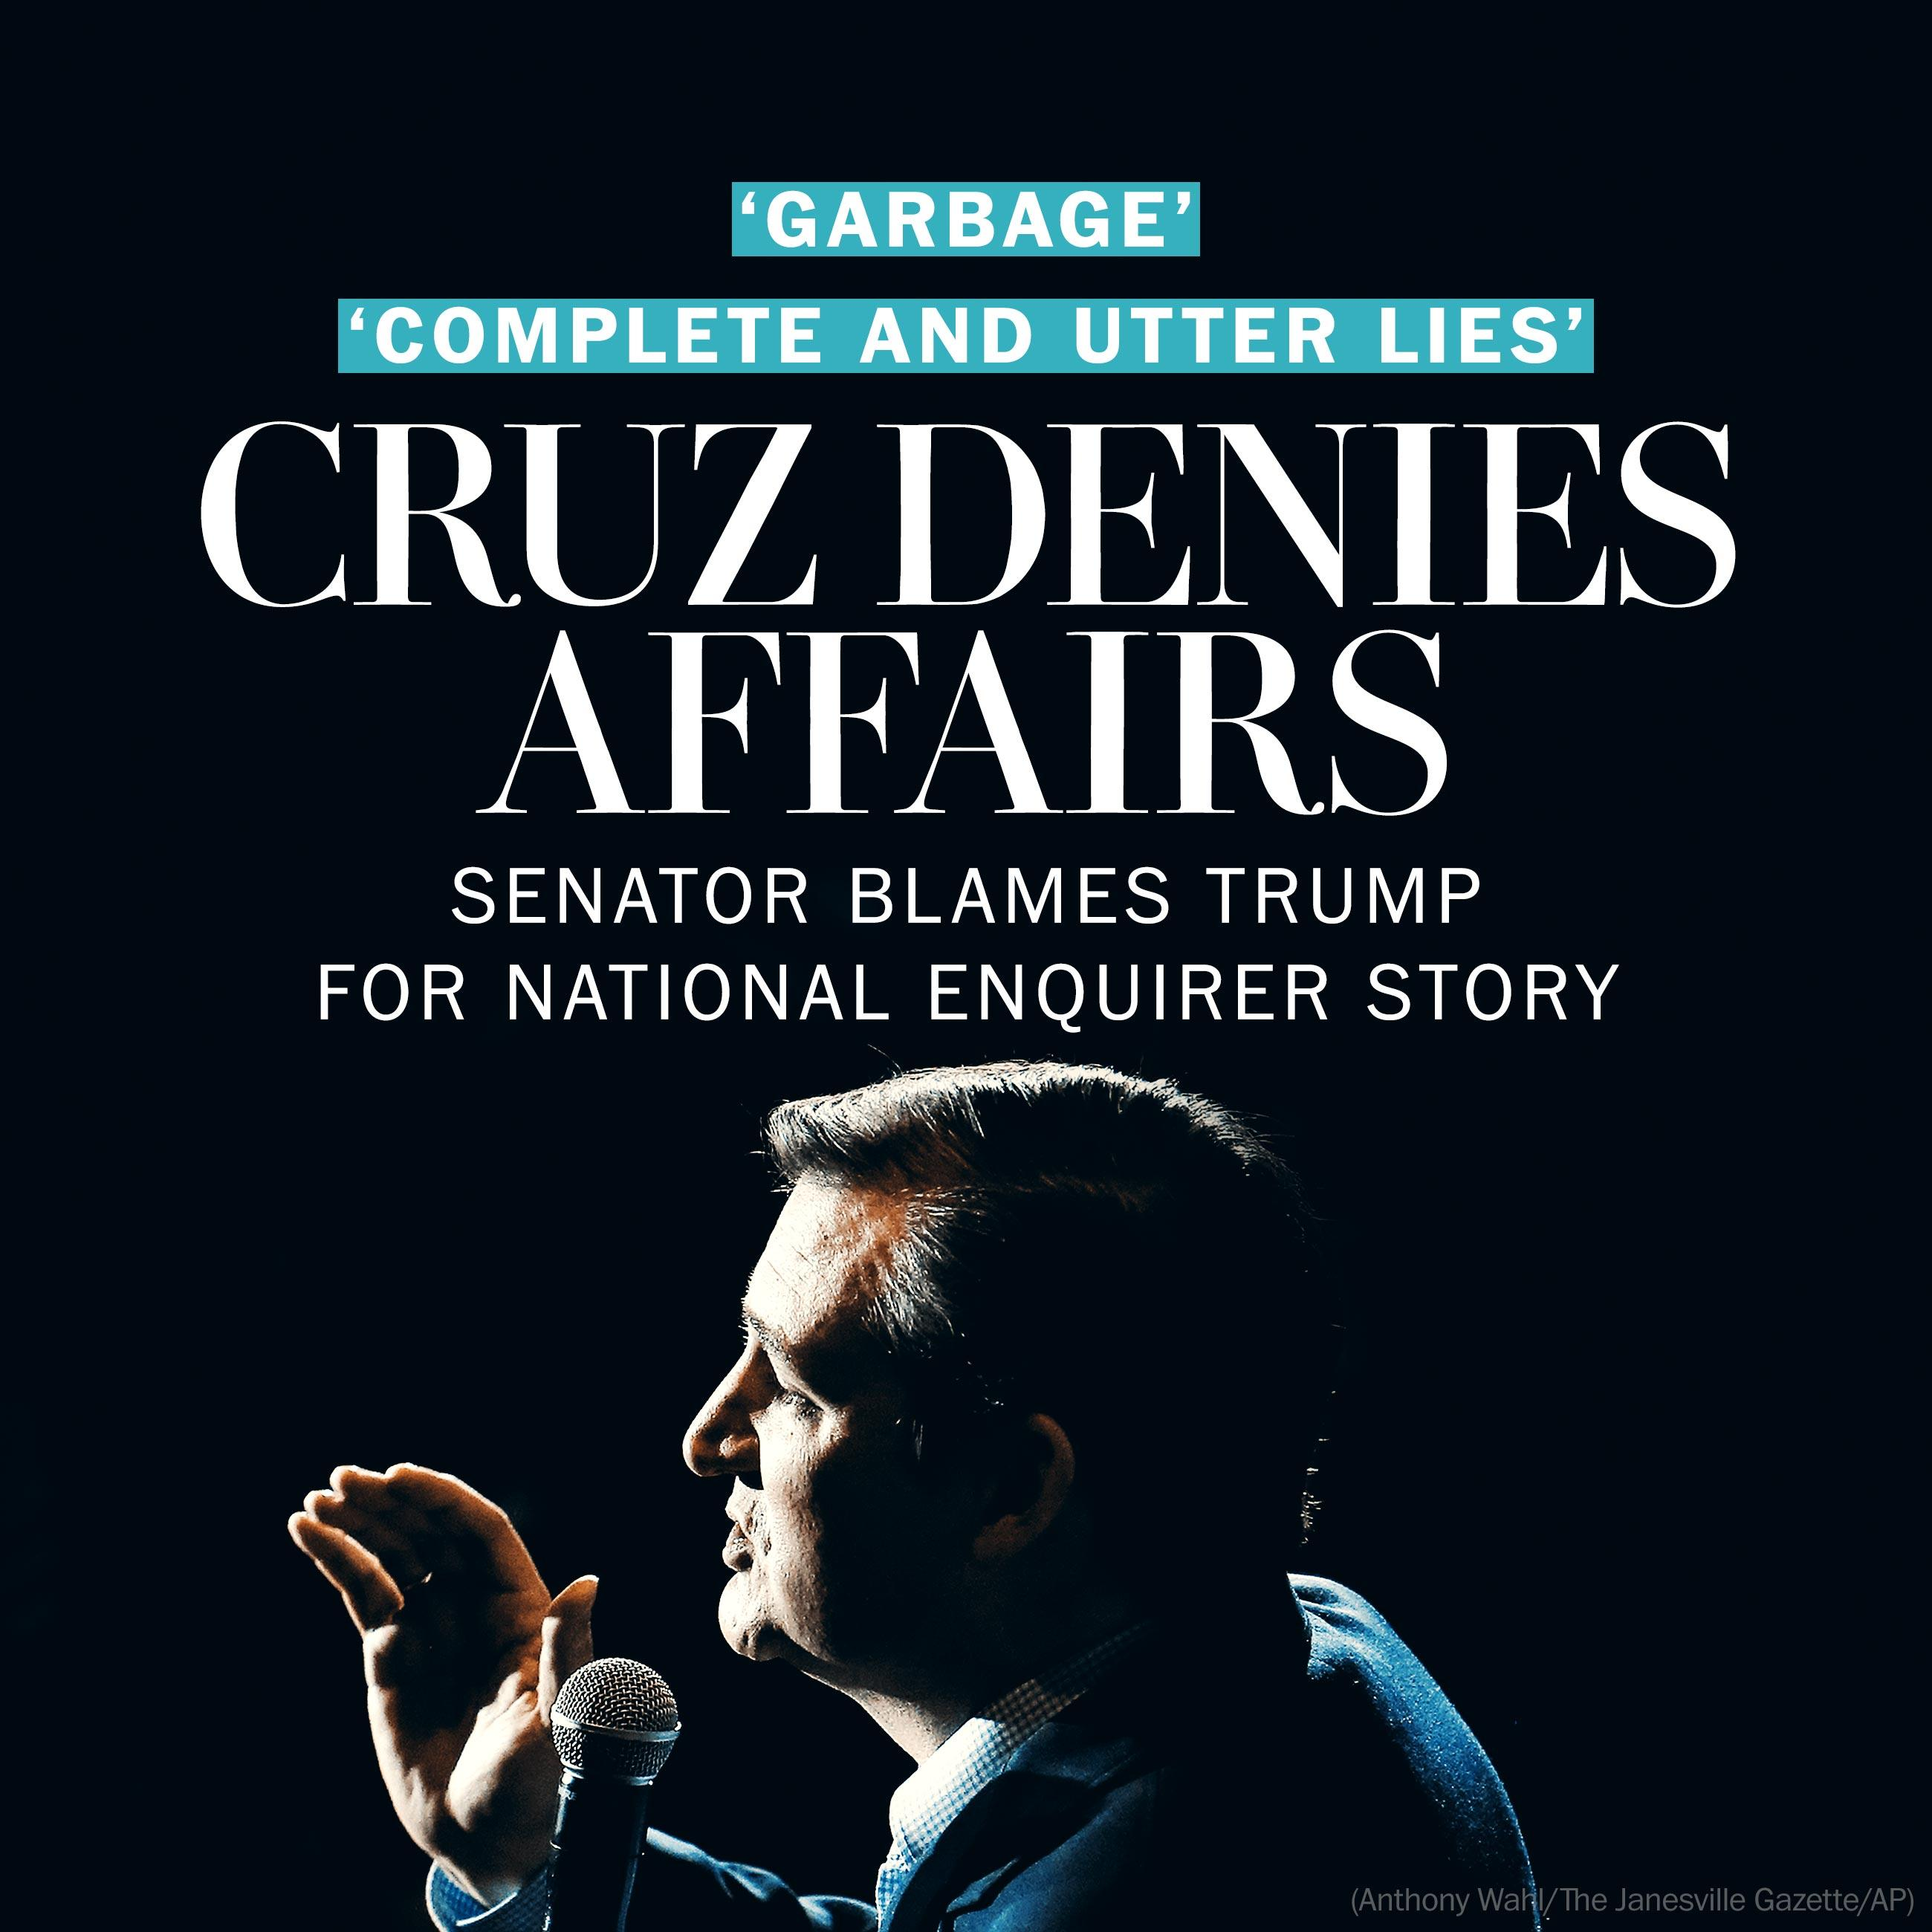 Cruz: National Enquirer story is 'garbage' from Donald Trump and his henchmen'